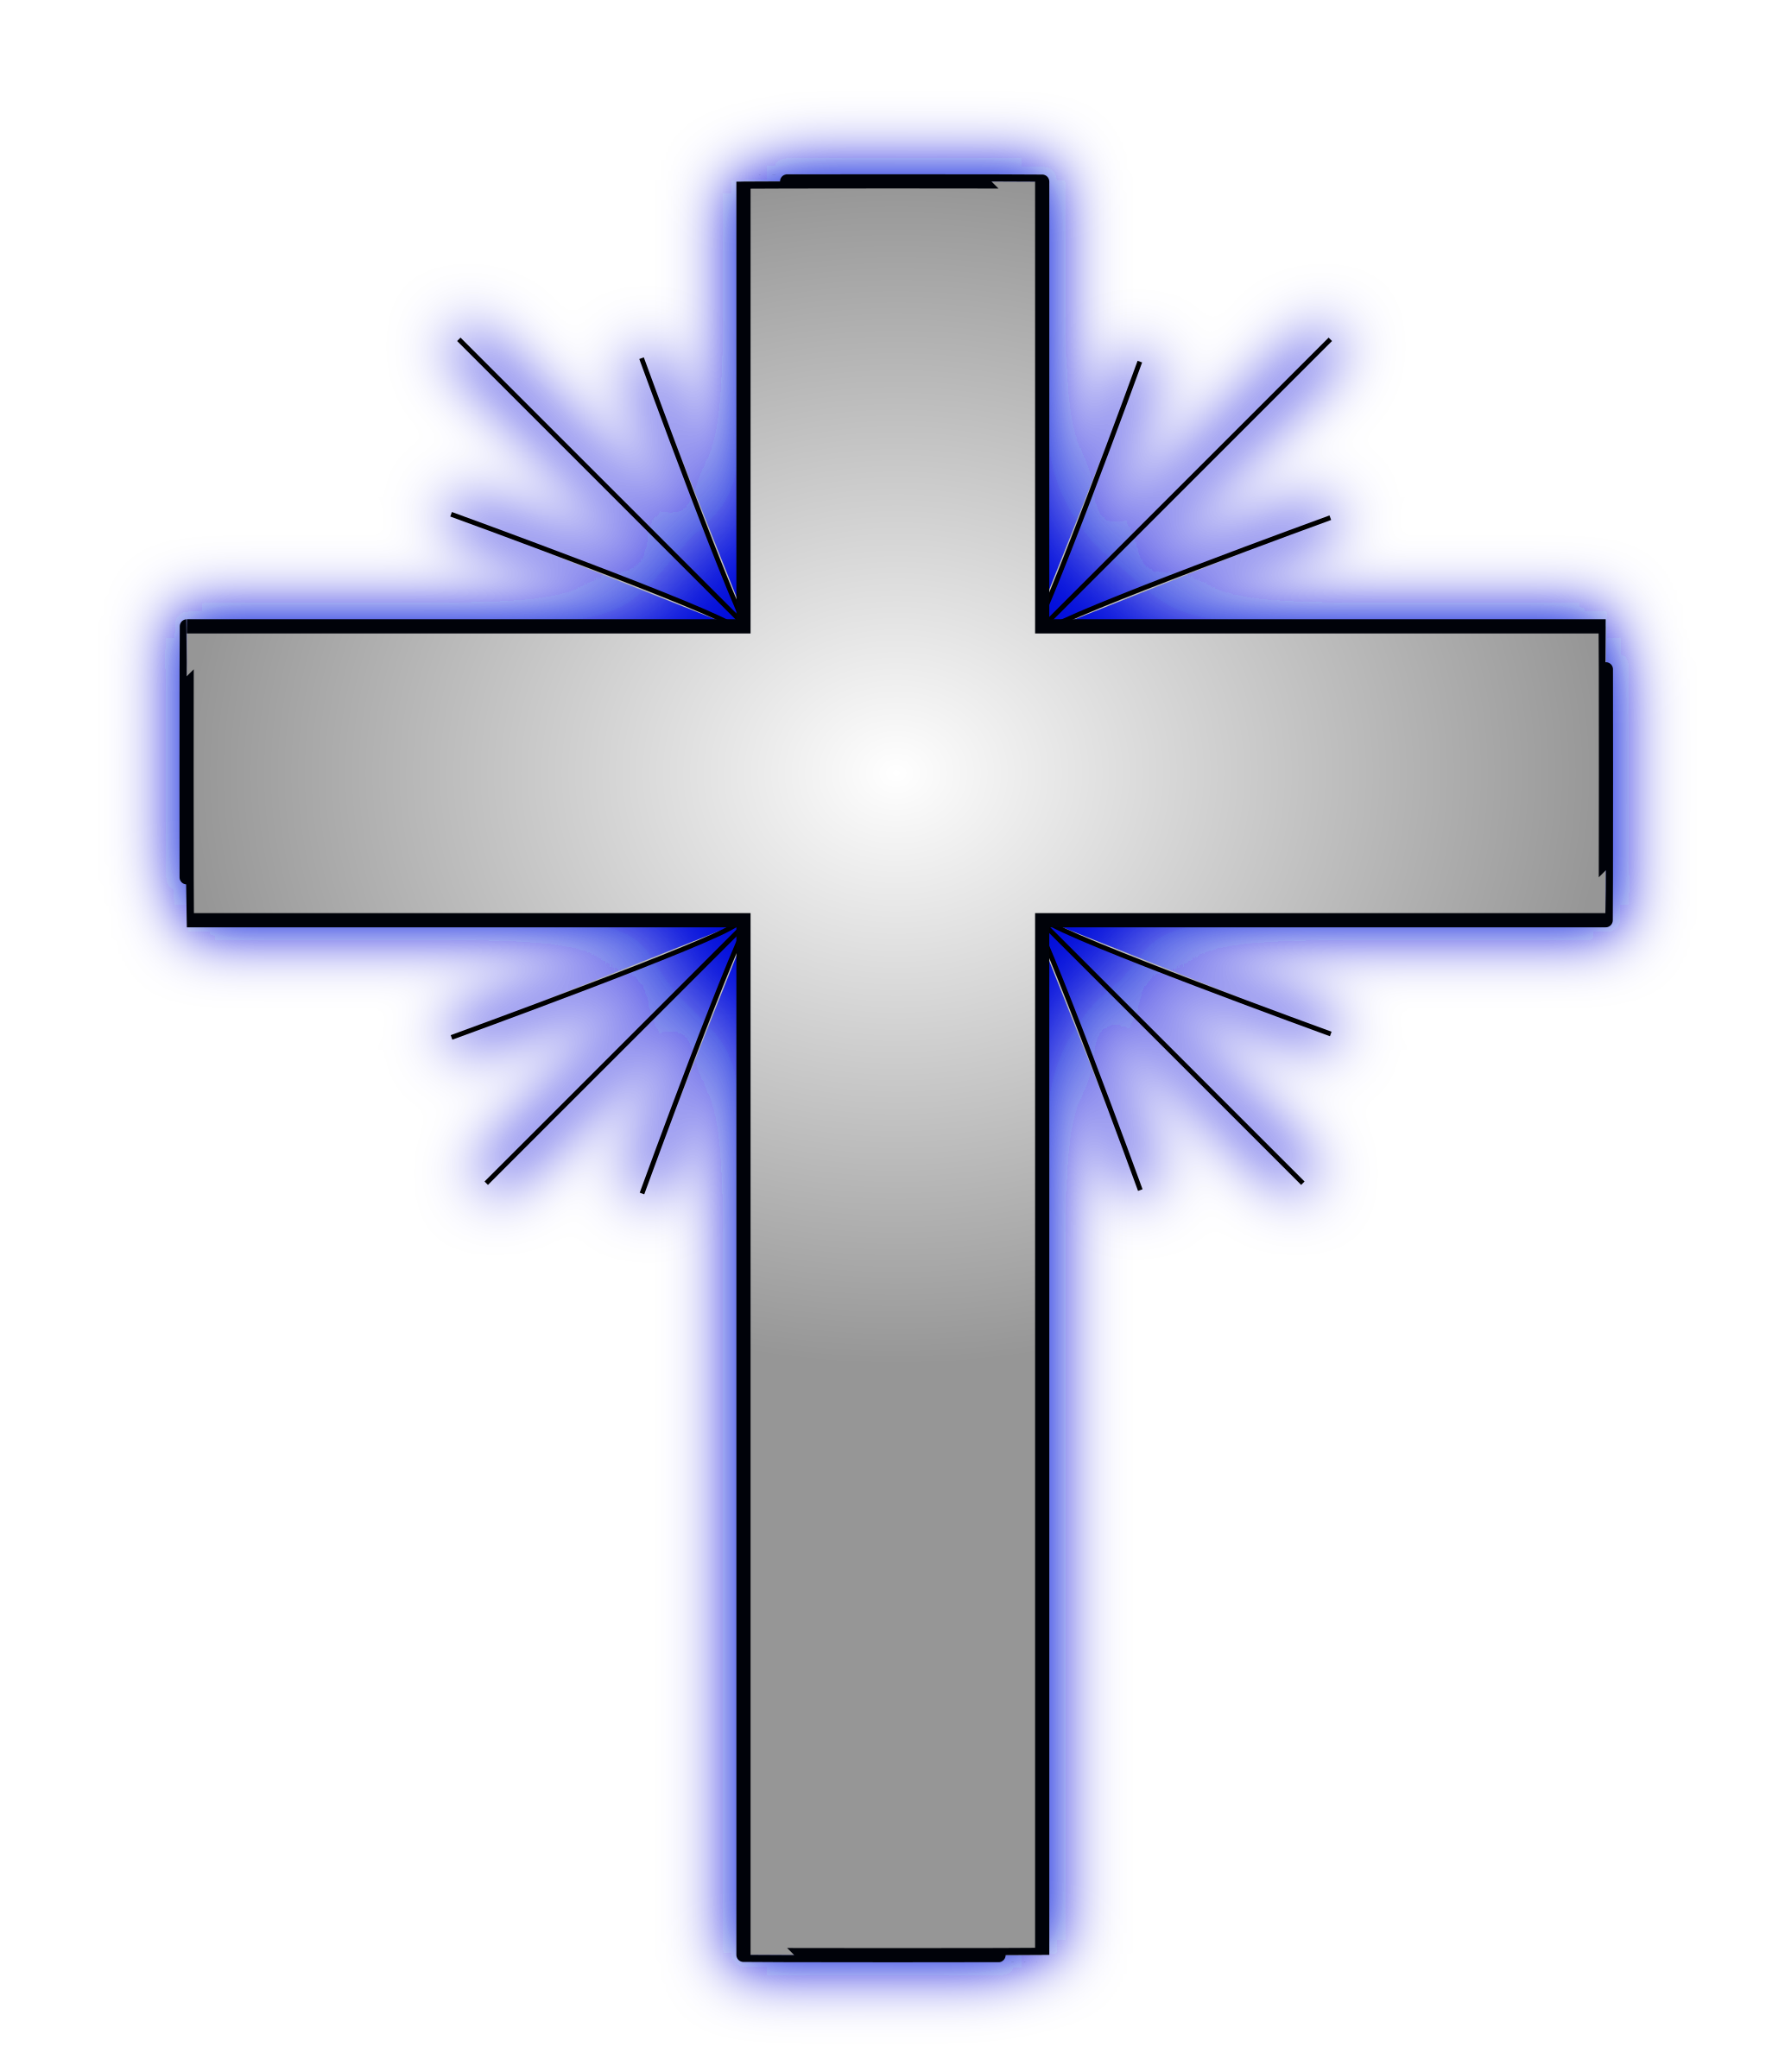 Catholic Cross Clipart at GetDrawings.com | Free for personal use ... svg royalty free stock